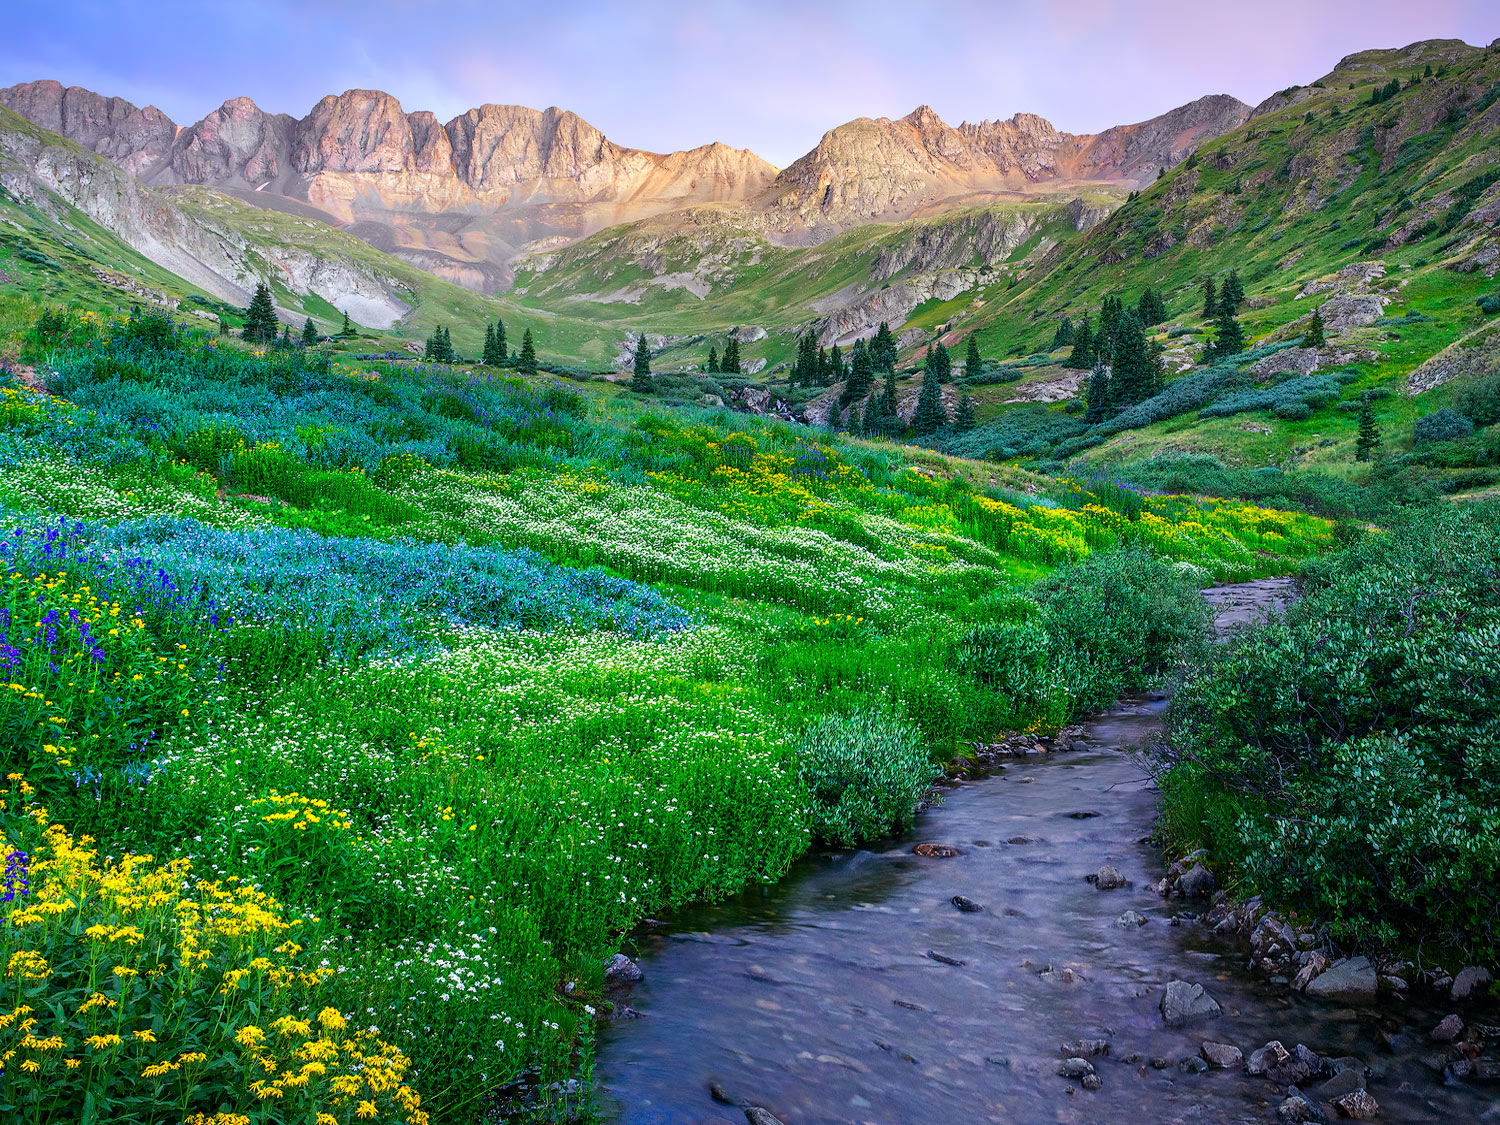 A variety of wildflowers are on slopes surrounding a creek leading up to high mountain peaks of the Alpine Loop in Colorado. Taken during a cloudy sunset.